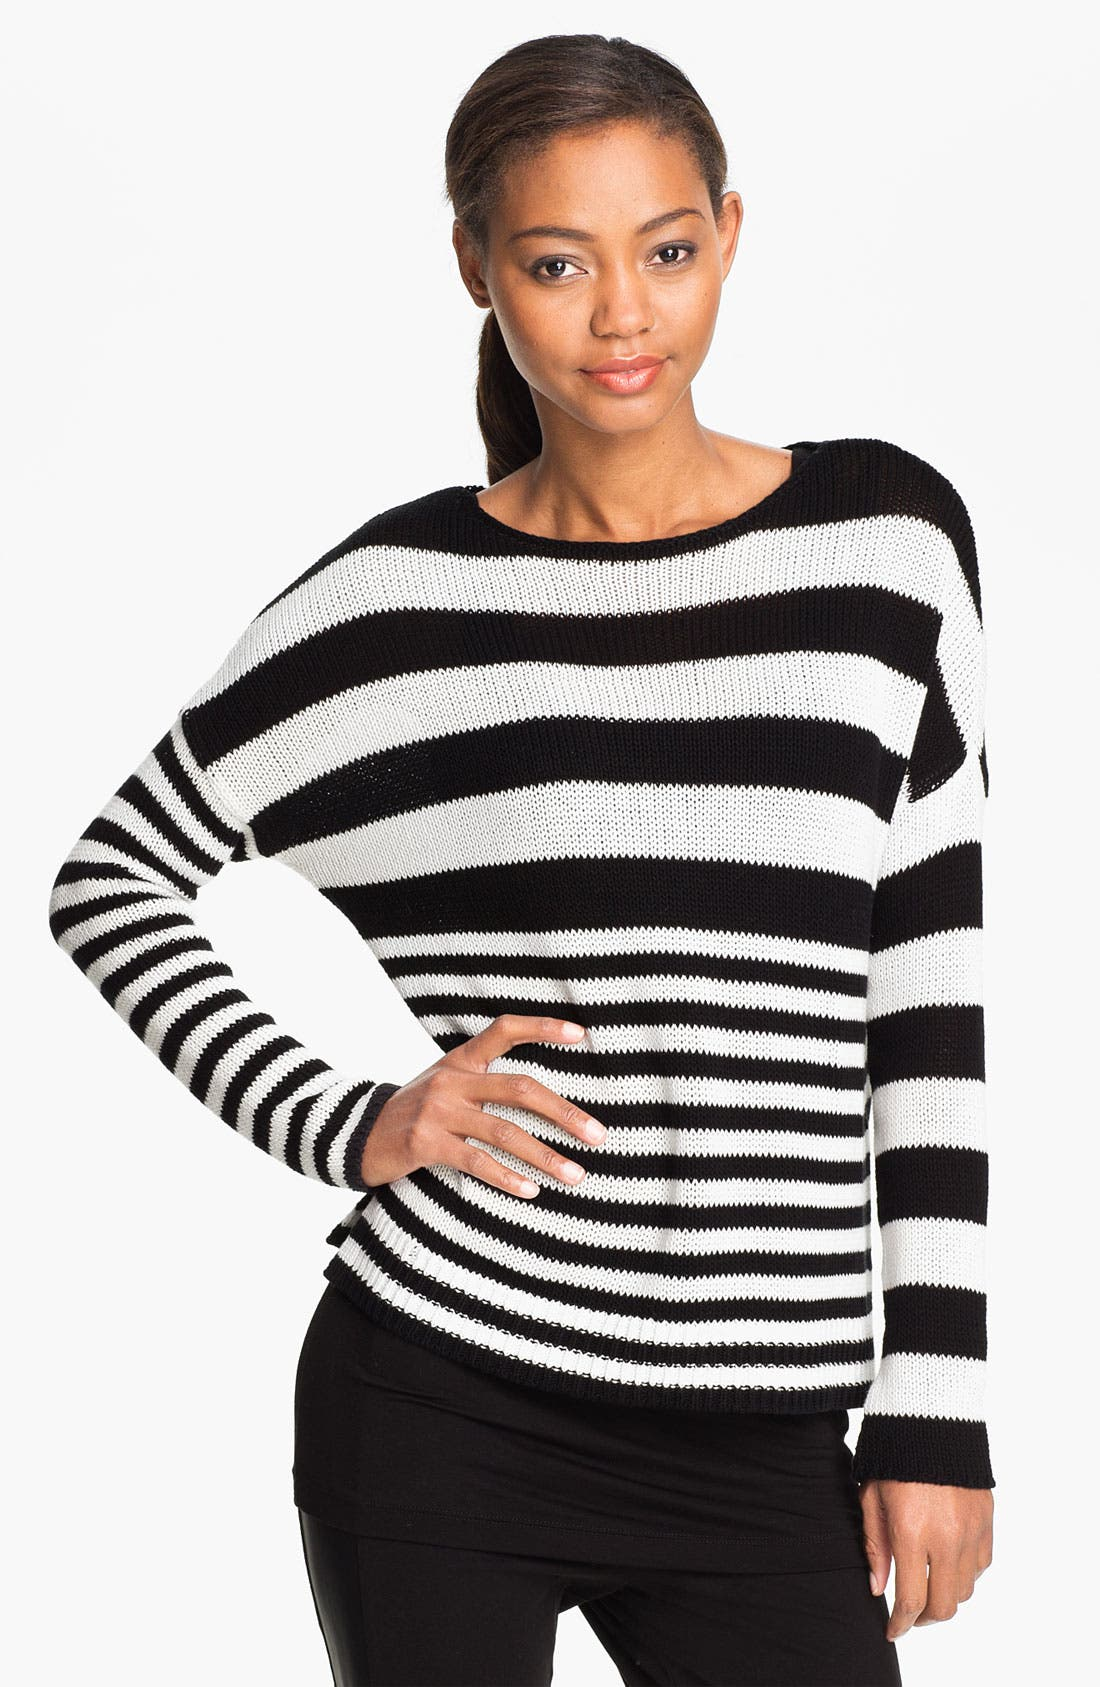 Alternate Image 1 Selected - Two by Vince Camuto Boatneck Sweater